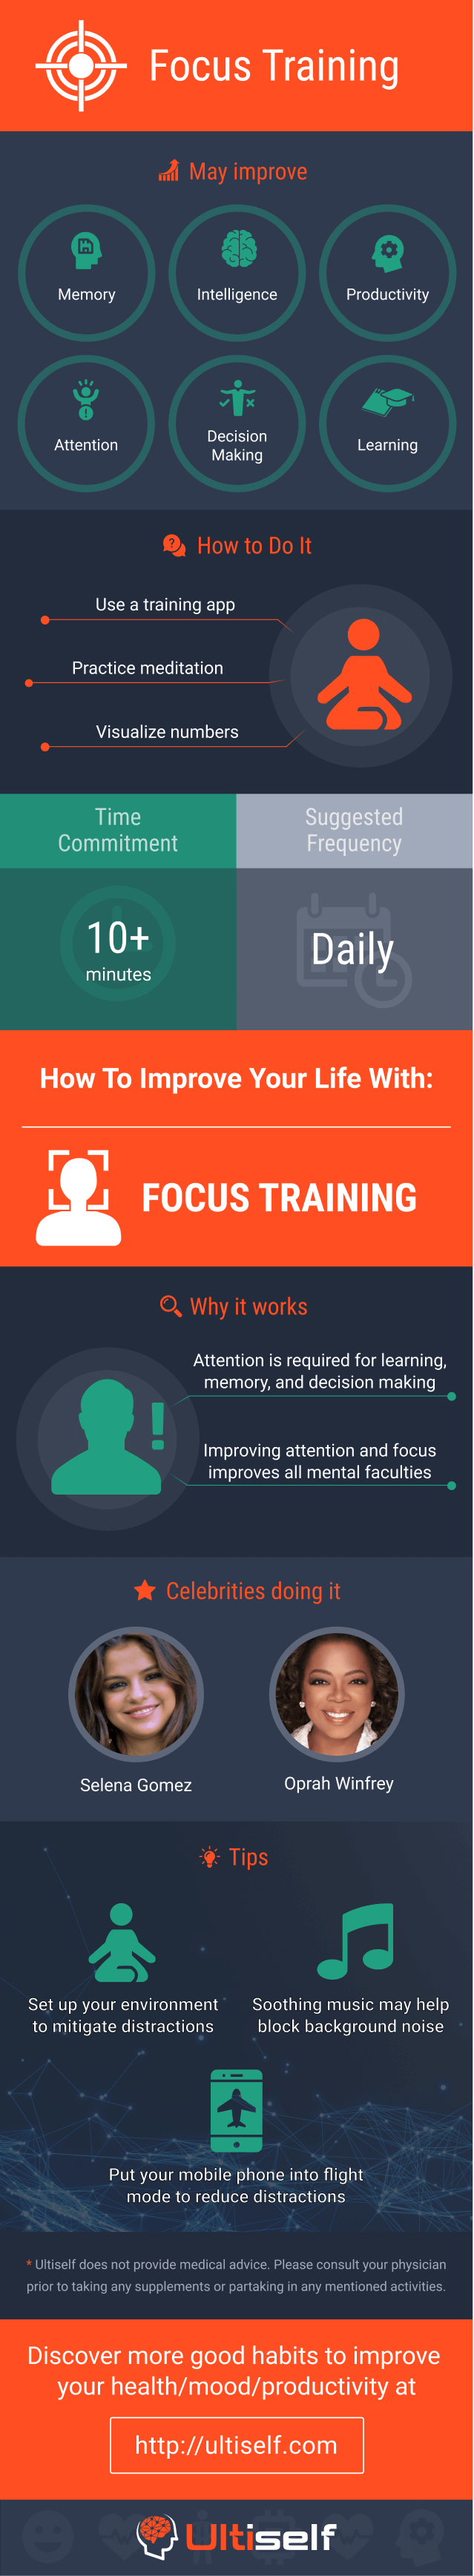 Focus Training infographic